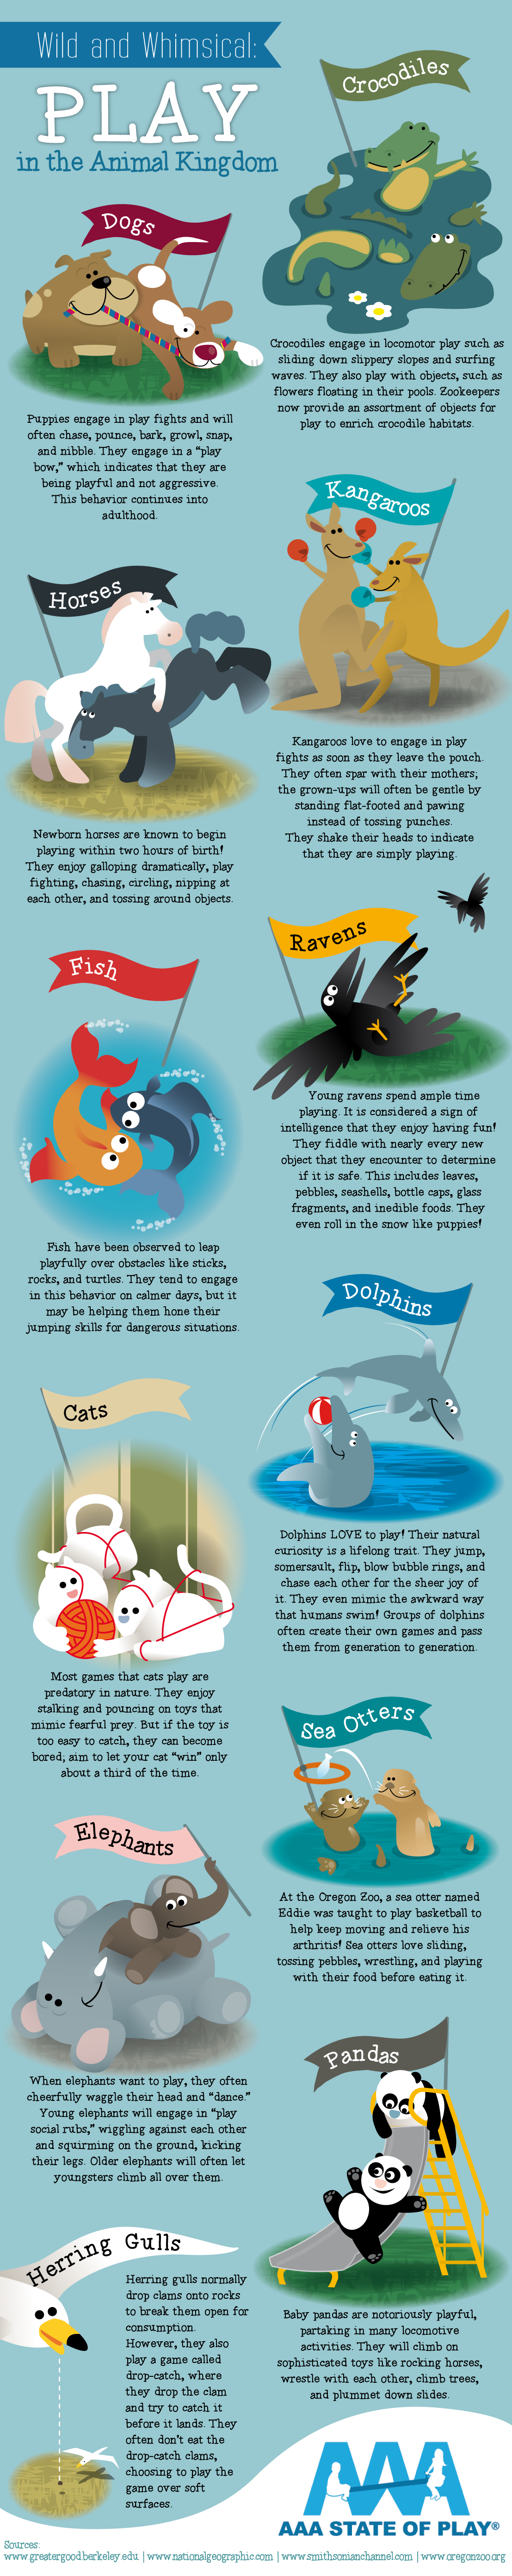 Wild and Whimsical play in the Animal Kingdom #Infographic